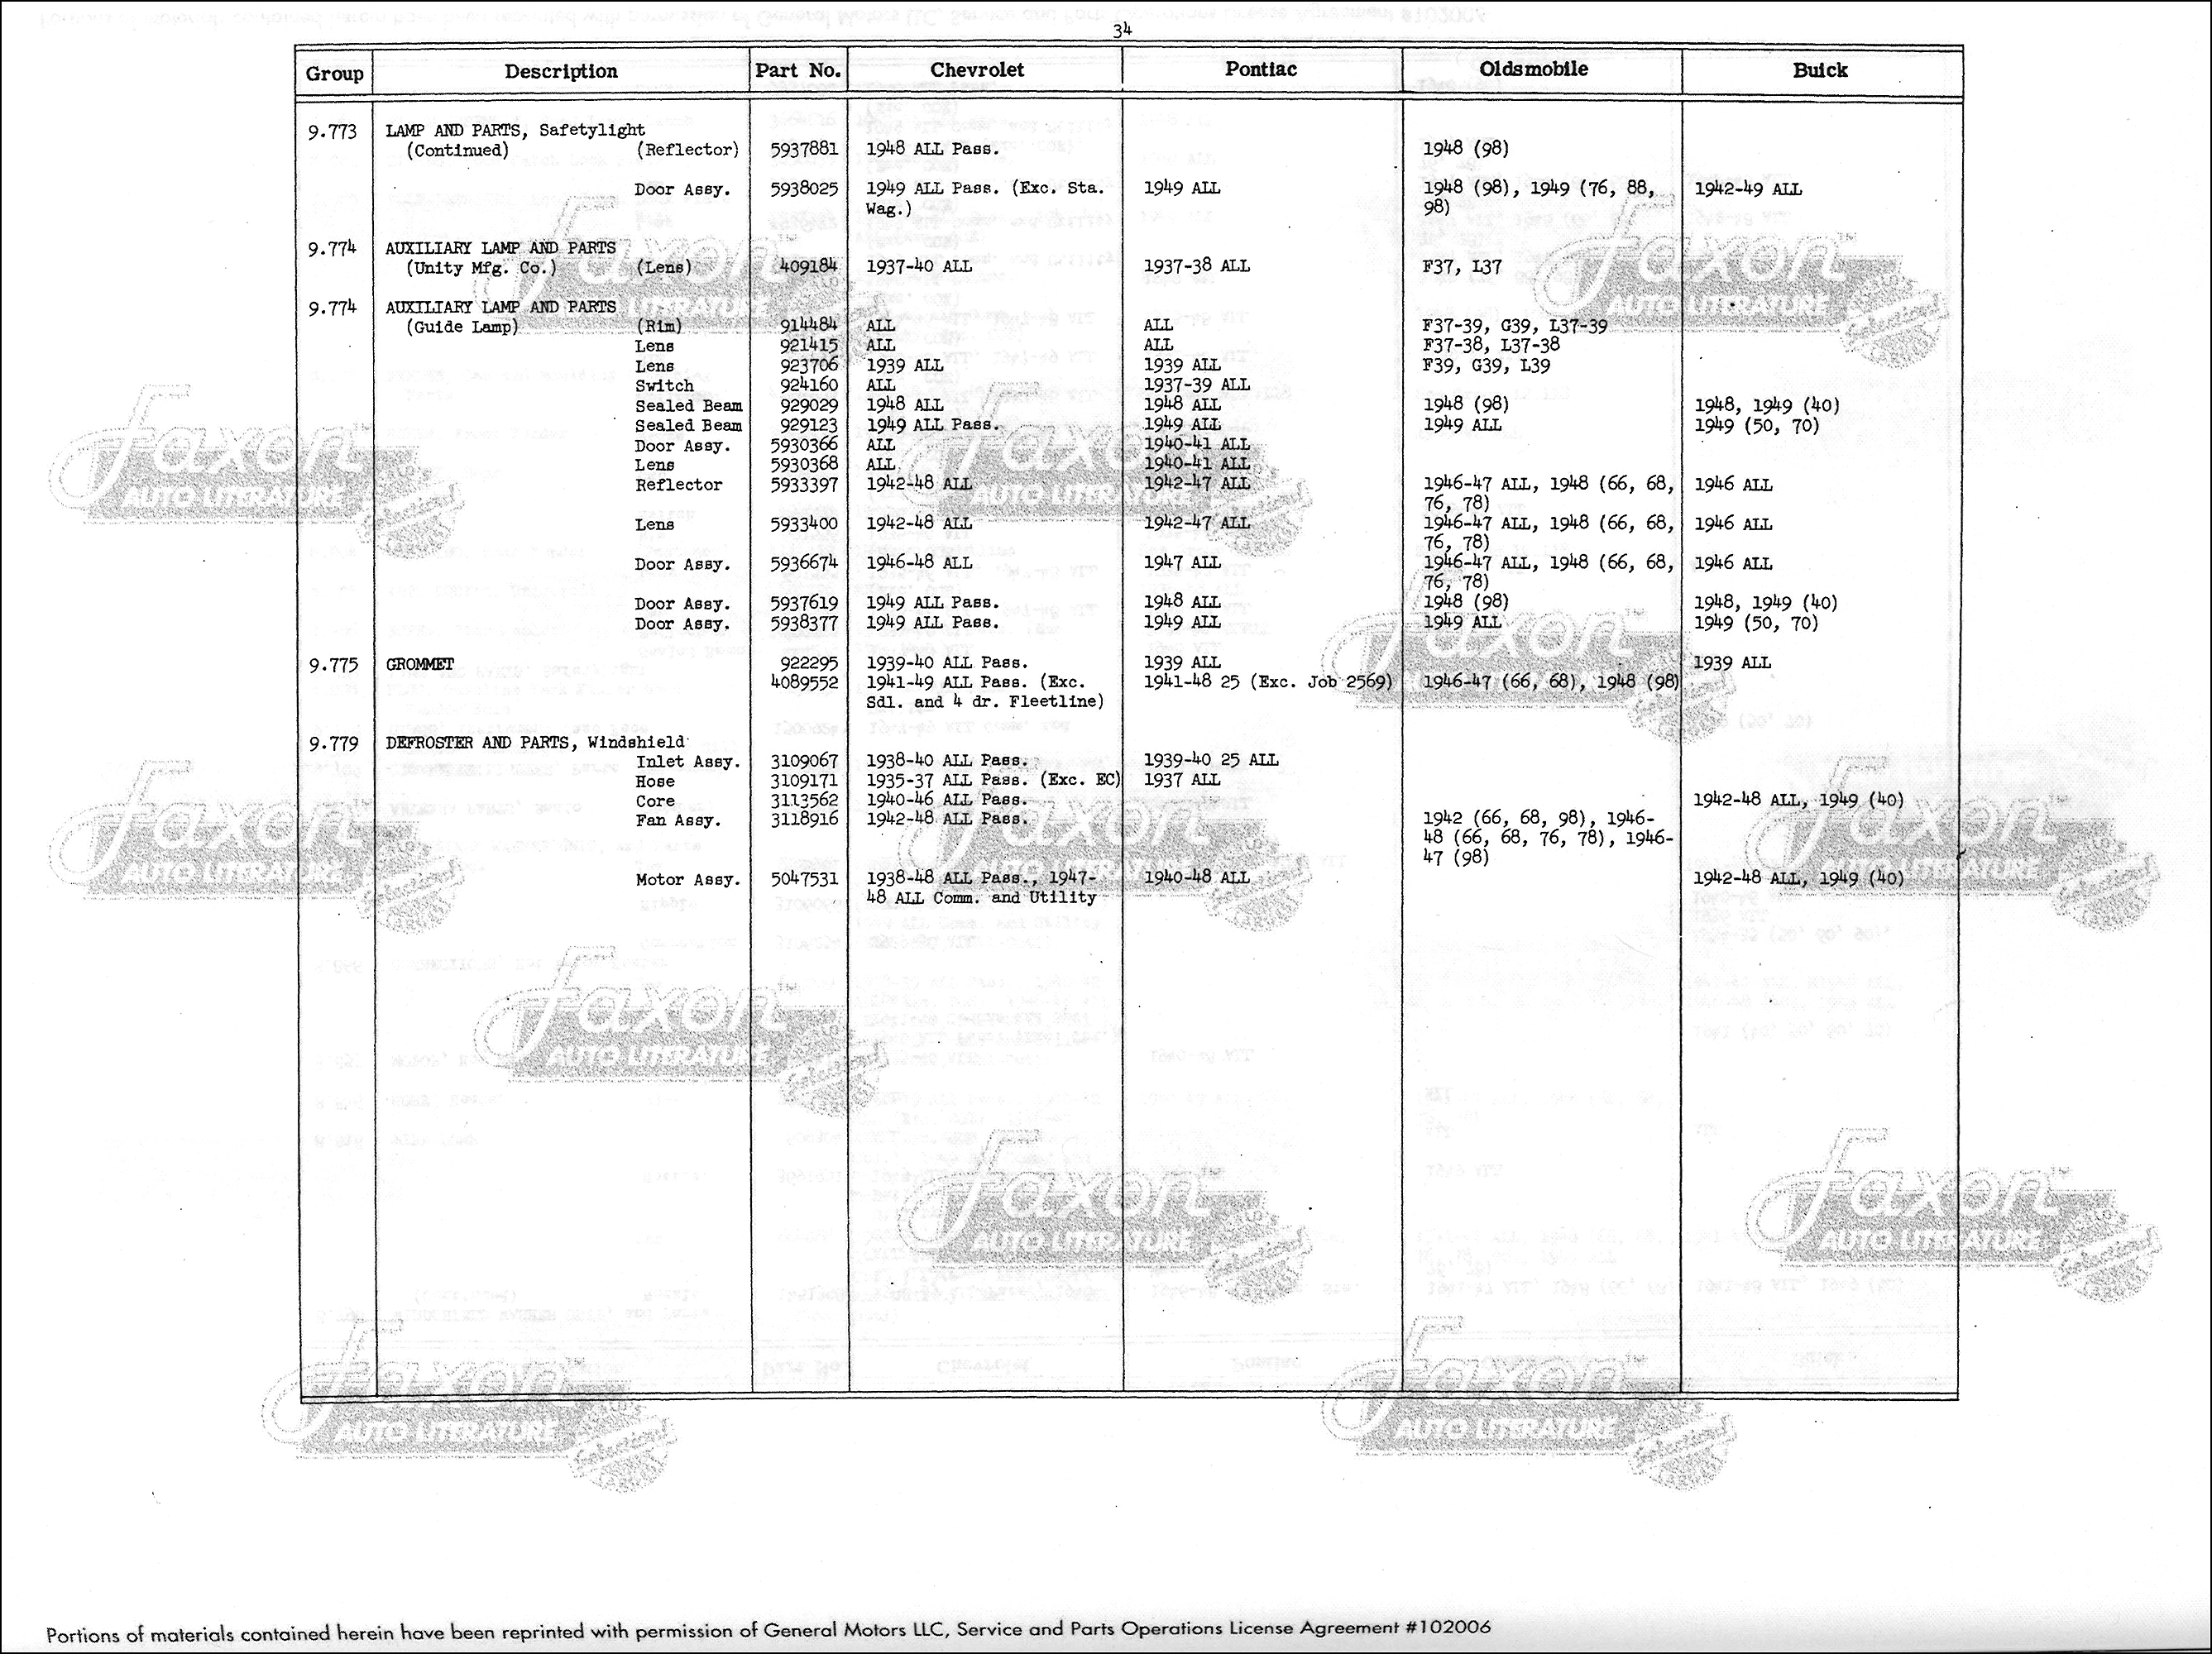 1937 1949 Chevrolet Gm Parts Interchange Book Reprint Chevy Truck Sample Page